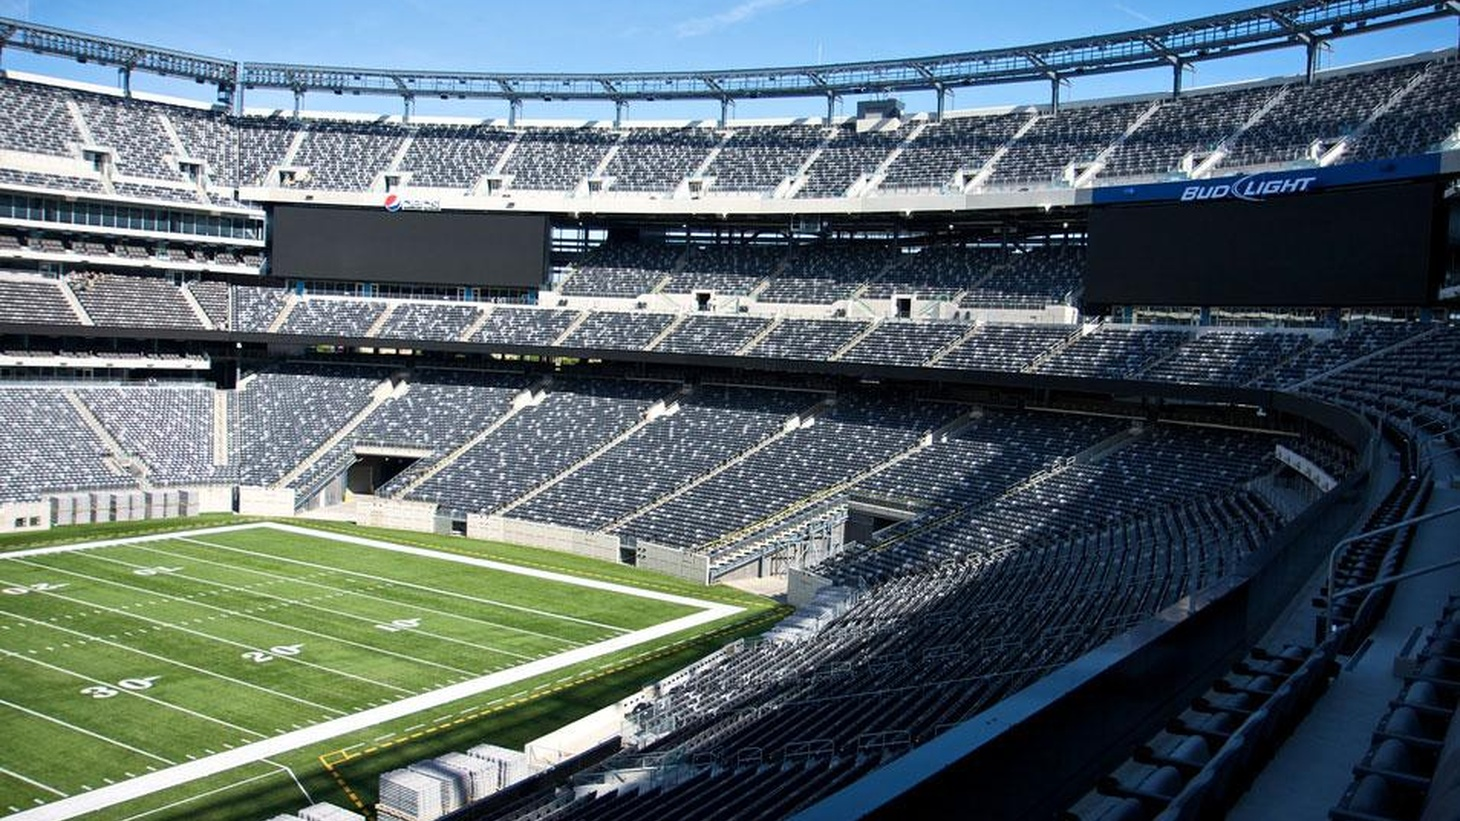 The announcement of future Super Bowl locales is usually pretty ho-hum. Miami again. New Orleans again. Maybe San Diego. Maybe Pasadena. But when the new Meadowlands Stadium in East Rutherford, New Jersey, won the bid for Super Bowl 2014 this week, bloggers feverishly took to their keyboards...